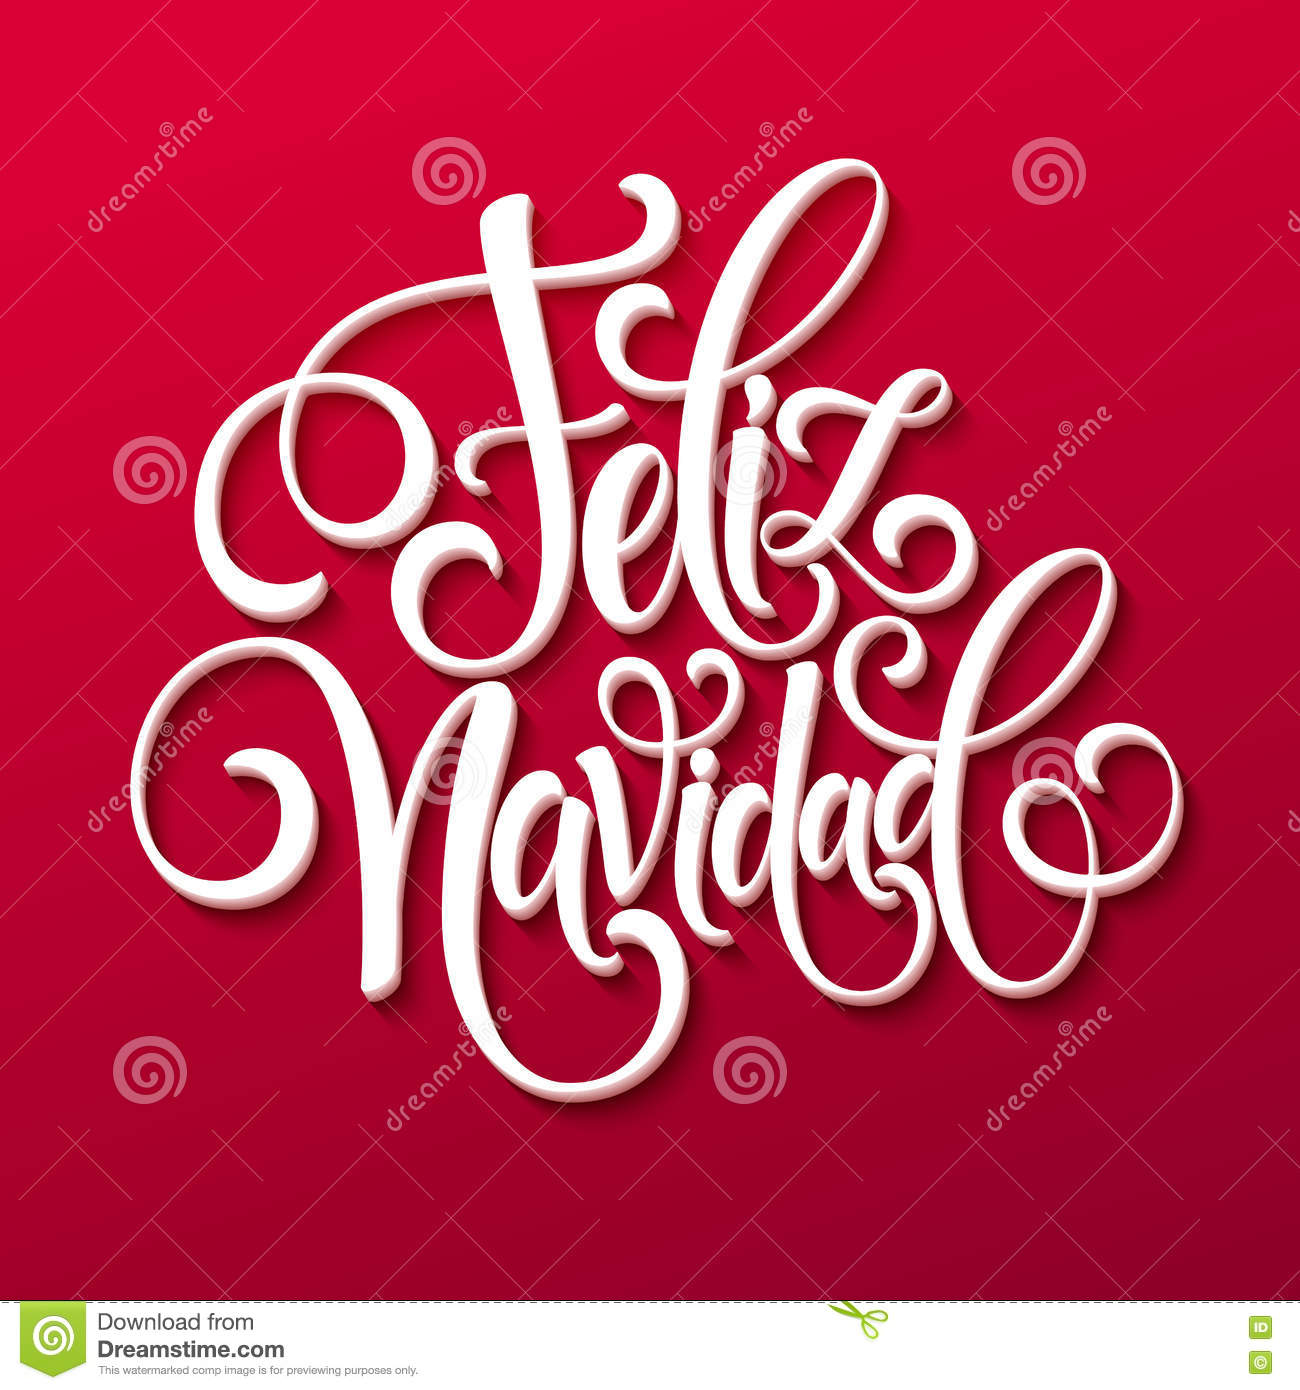 Feliz navidad hand lettering decoration text for greeting card feliz navidad hand lettering decoration text for greeting card design template merry christmas typography label in holiday celebration kristyandbryce Images